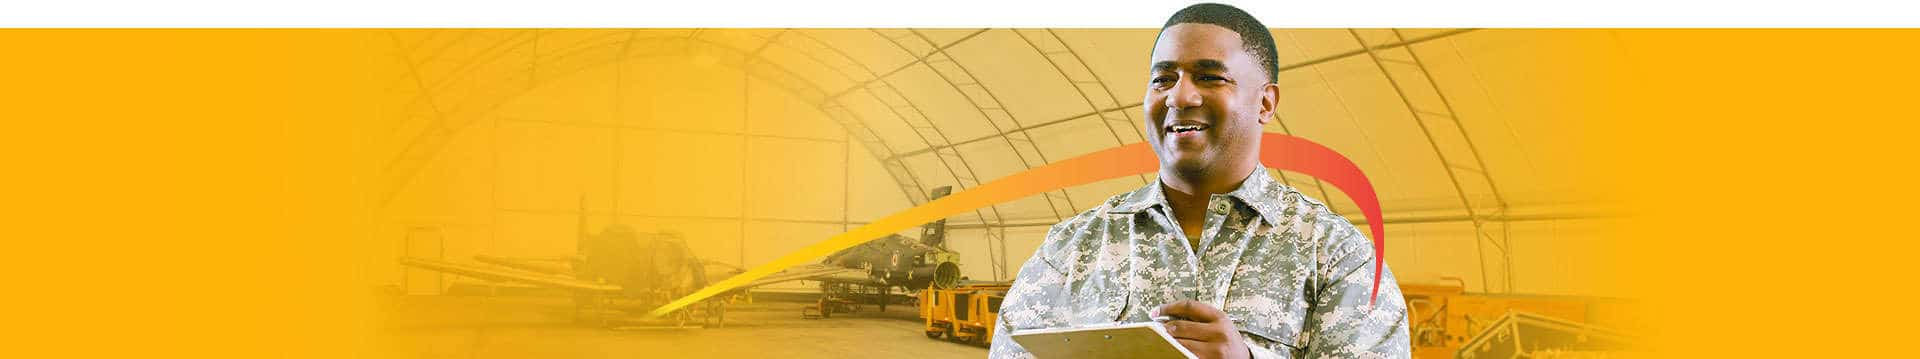 Britespan fabric buildings provide temporary buildings when military structures are needed fast.